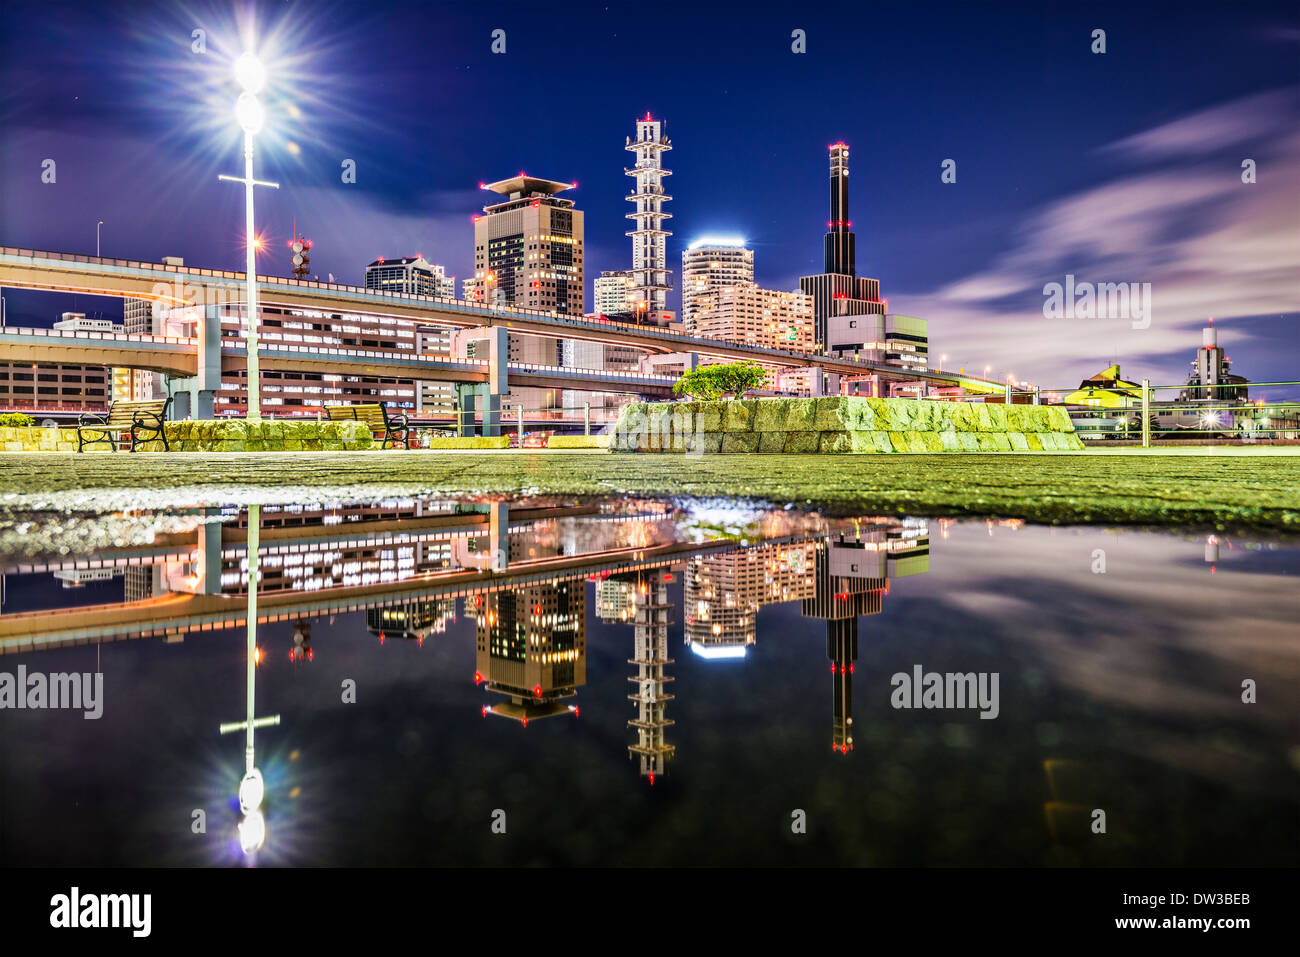 Kobe, Japan city skyline viewed from the Harborland district. - Stock Image